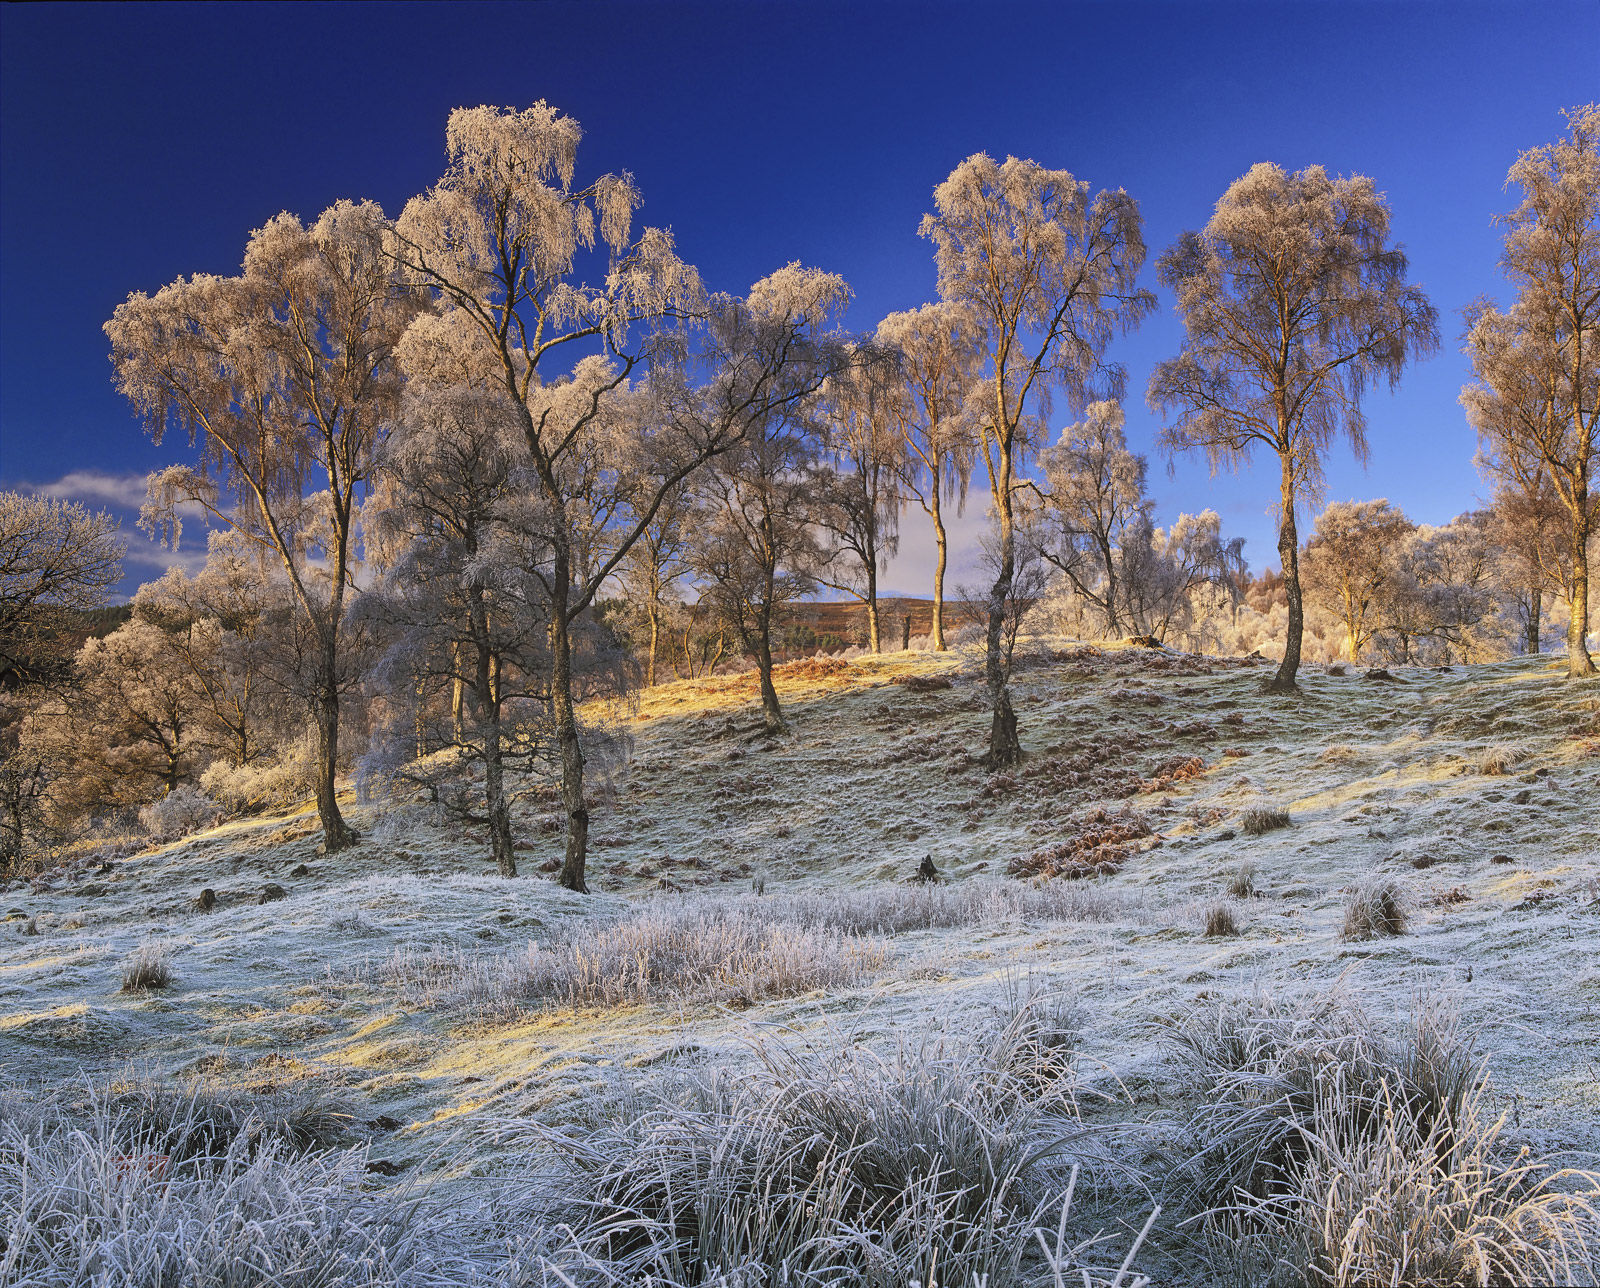 Birch trees have one major advantage when a heavy frost is in the air as it was on this very fine winter's day on the edge of...